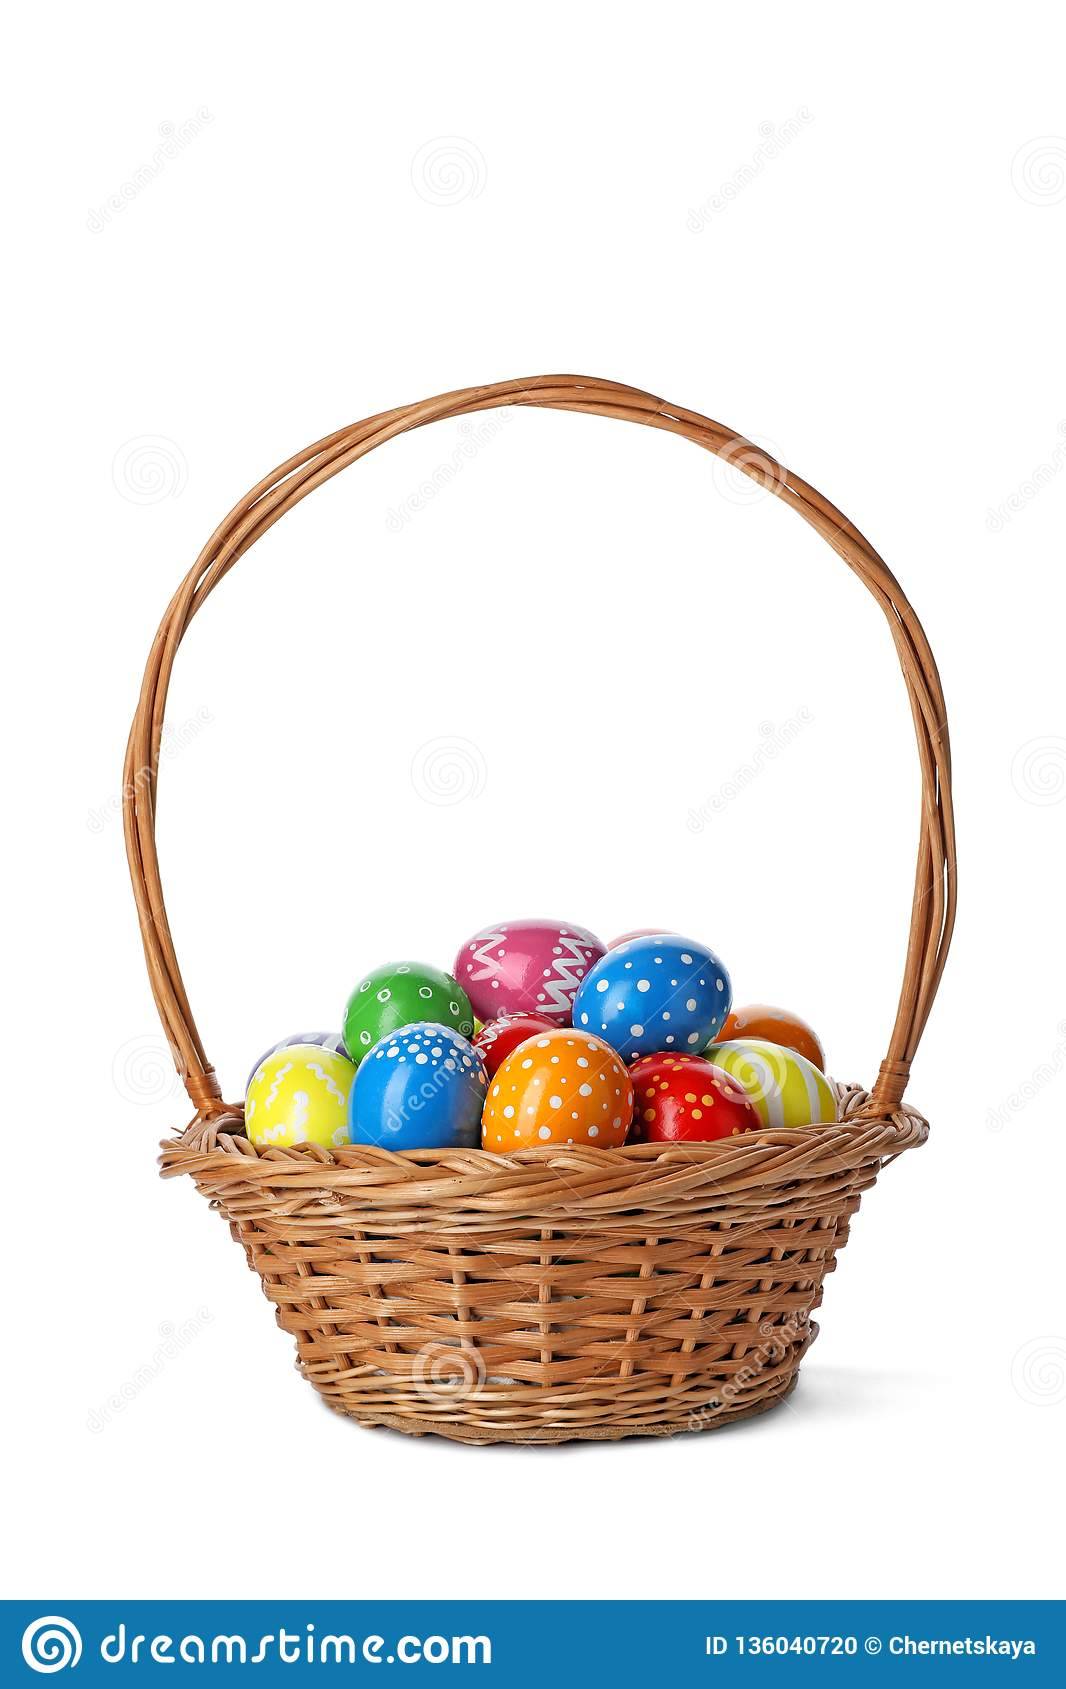 Decorated Easter eggs in wicker basket on white